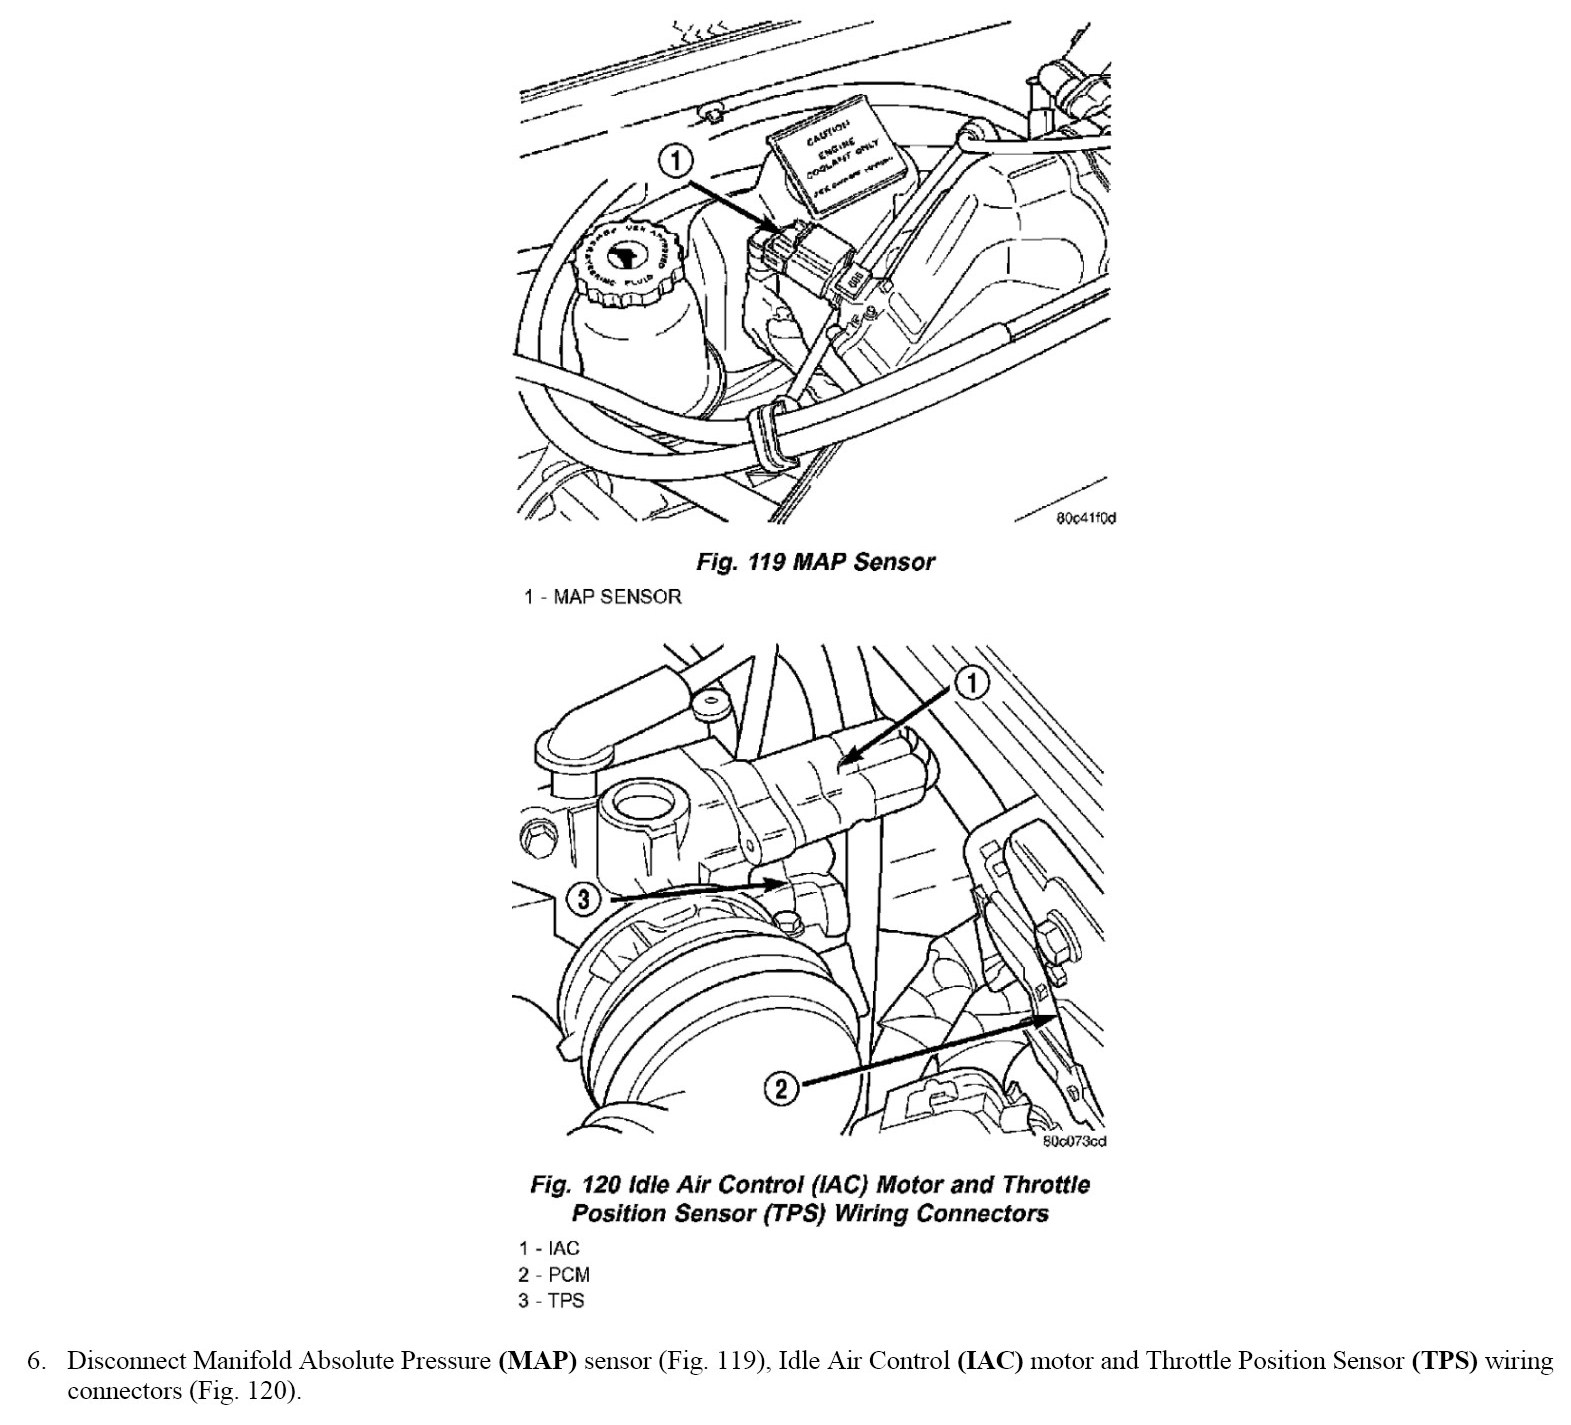 Hve A 2002 Chrysler Pt Cruiser Engine Overheats And I Believe That The Underside Of Diagram Graphic